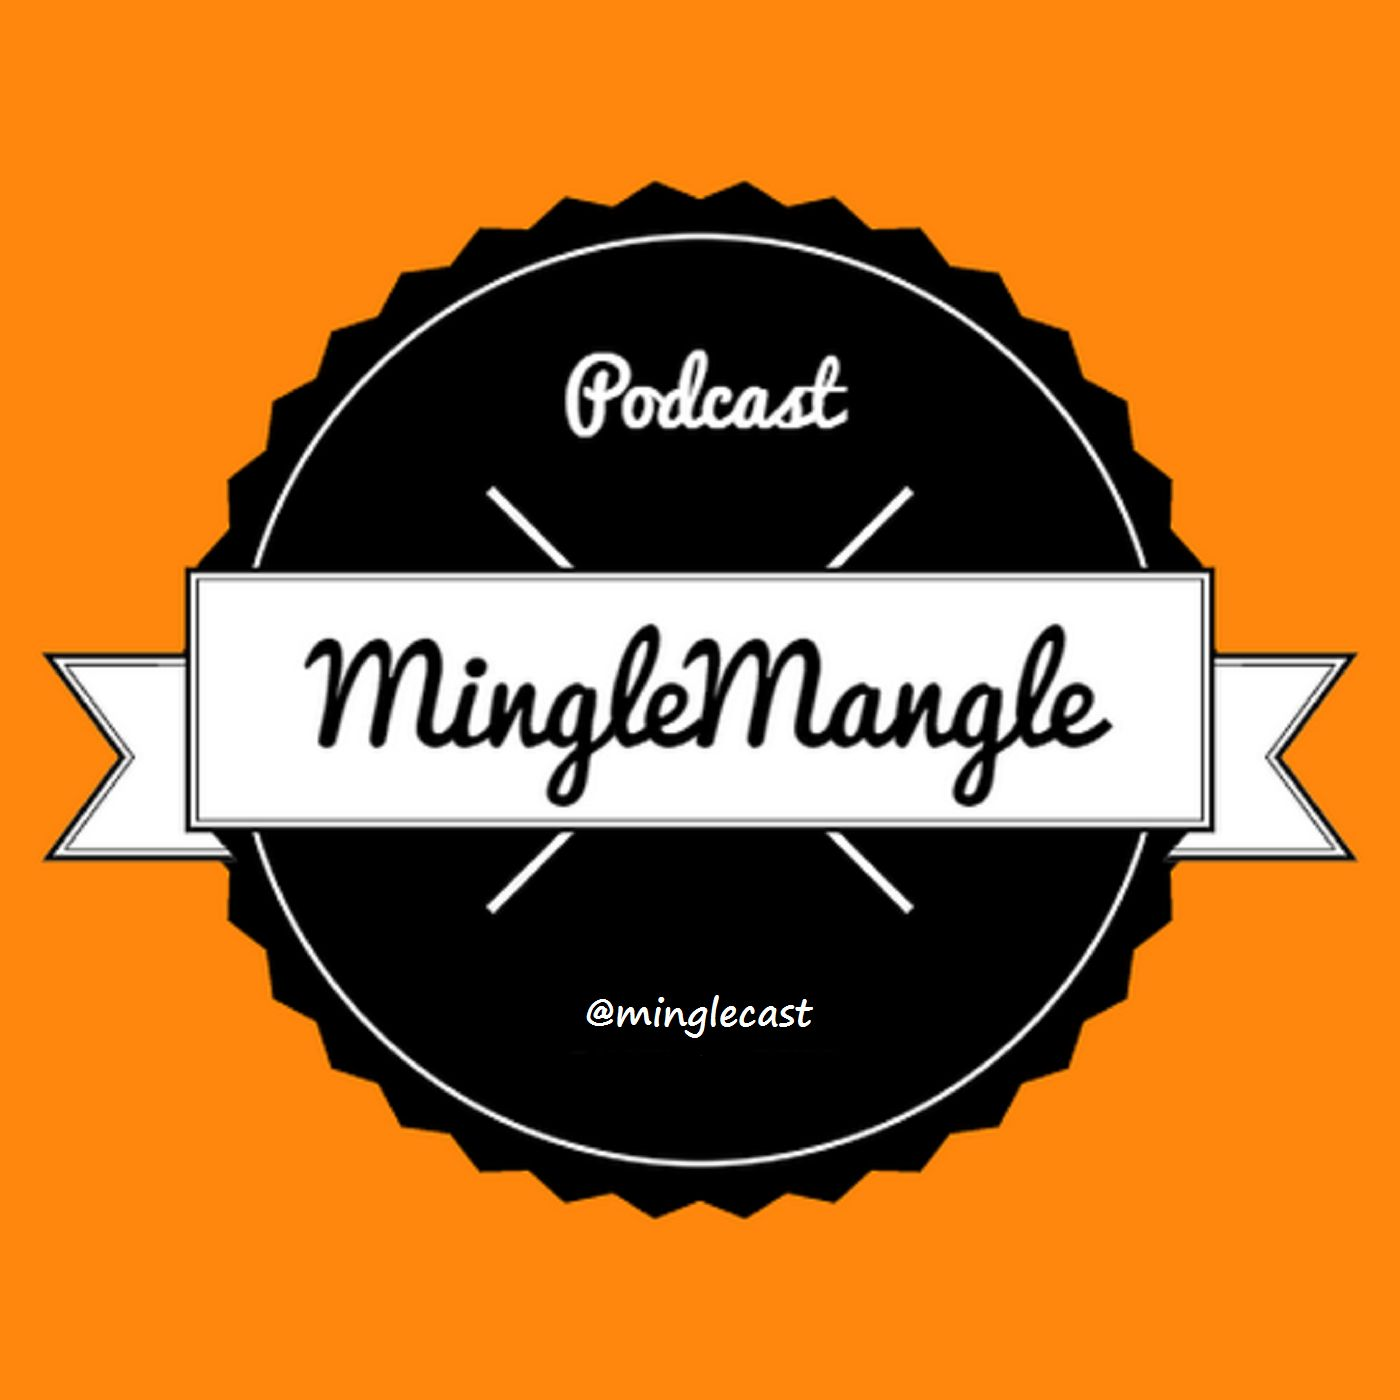 Mingle-Mangle Cast